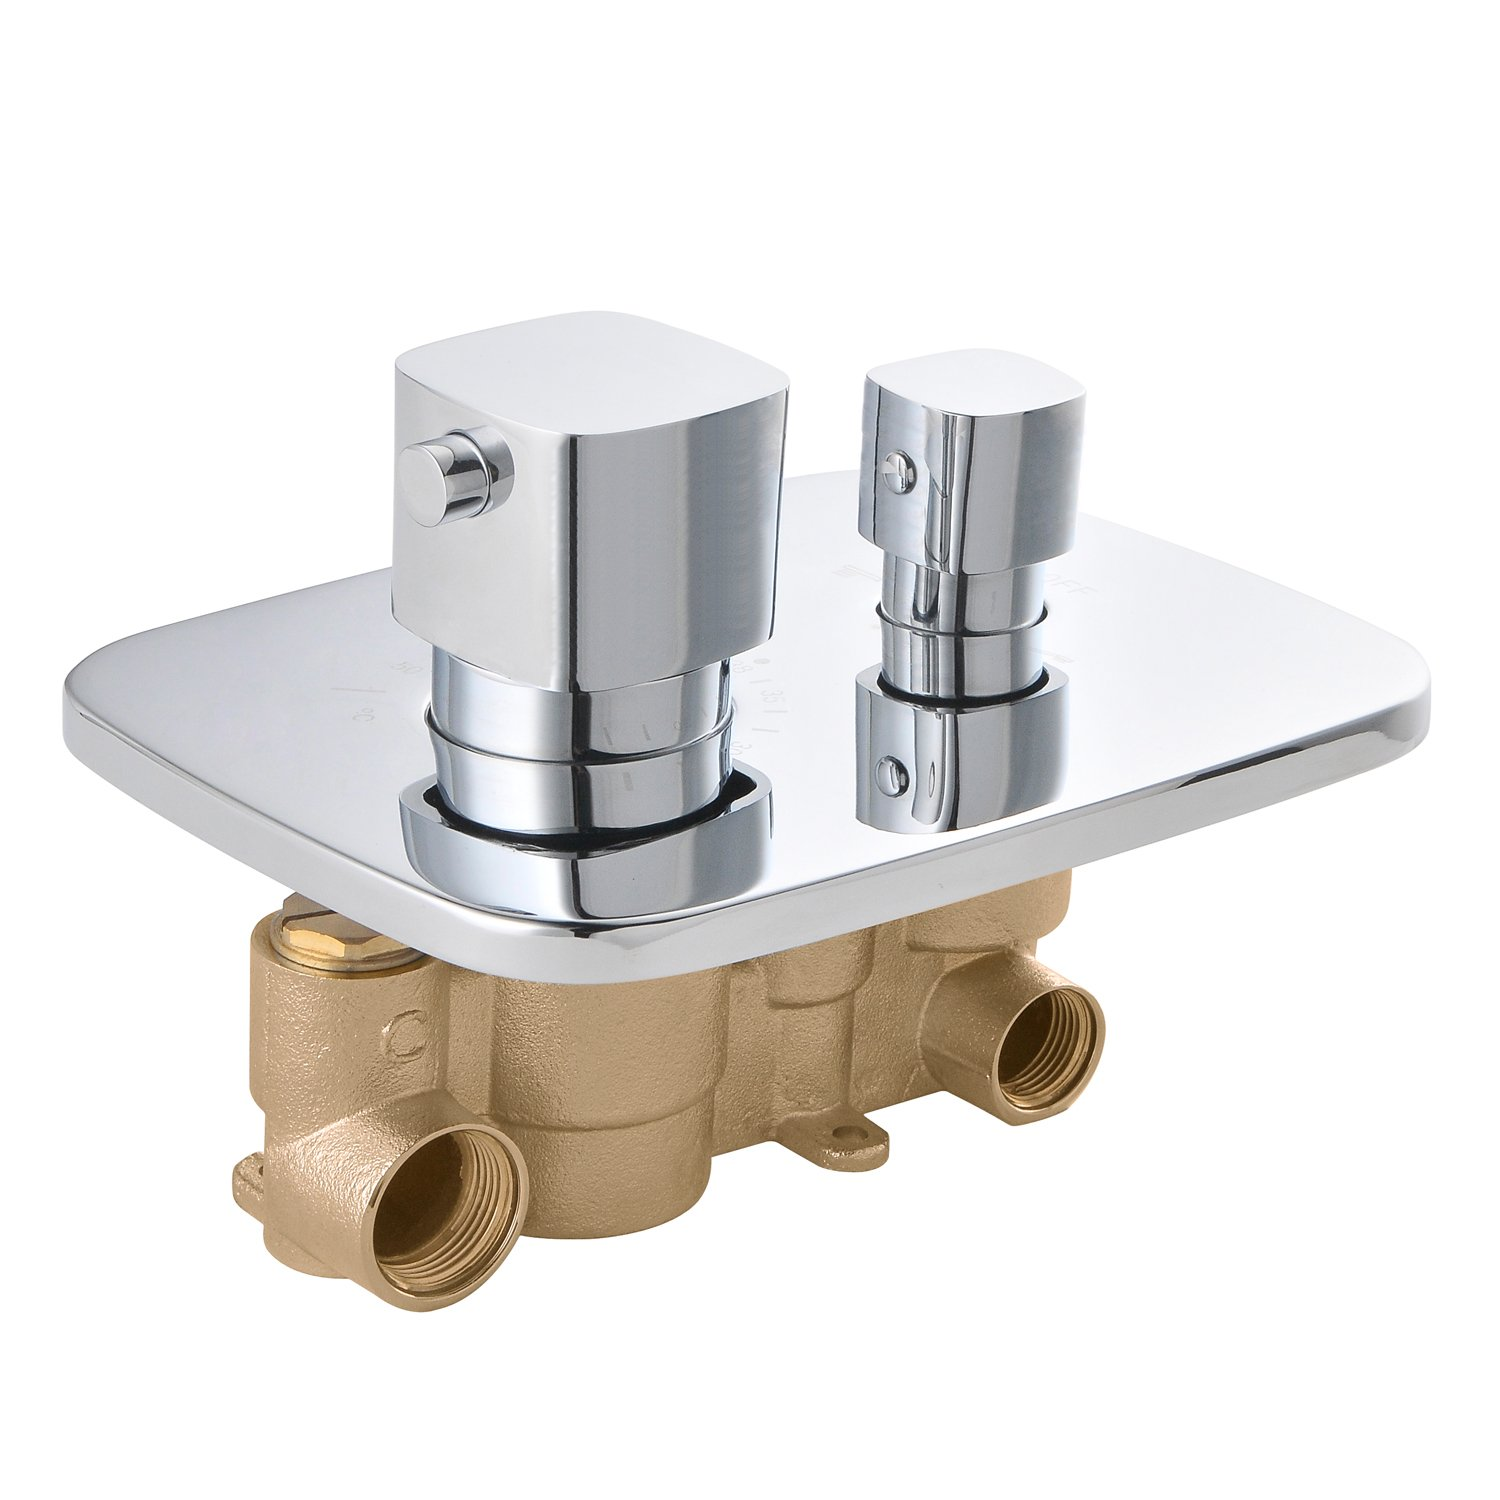 SUMERAIN Brass Concealed Dual Control Thermostatic Shower Valve, Chrome